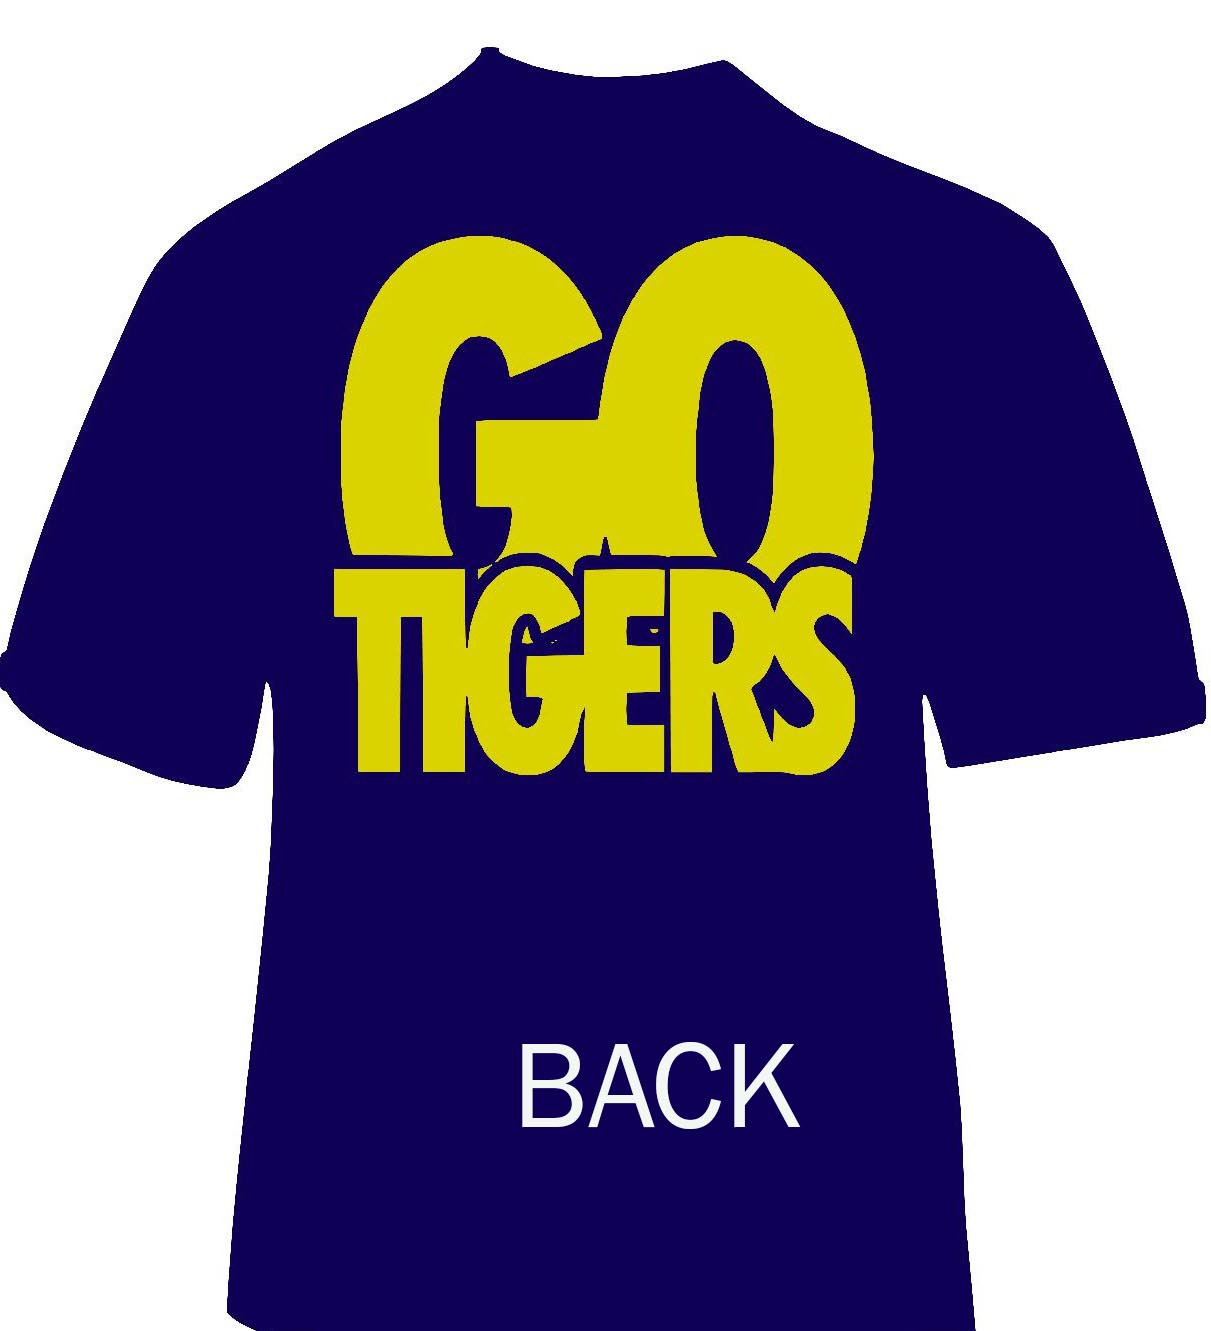 inderkum shirt5.jpg